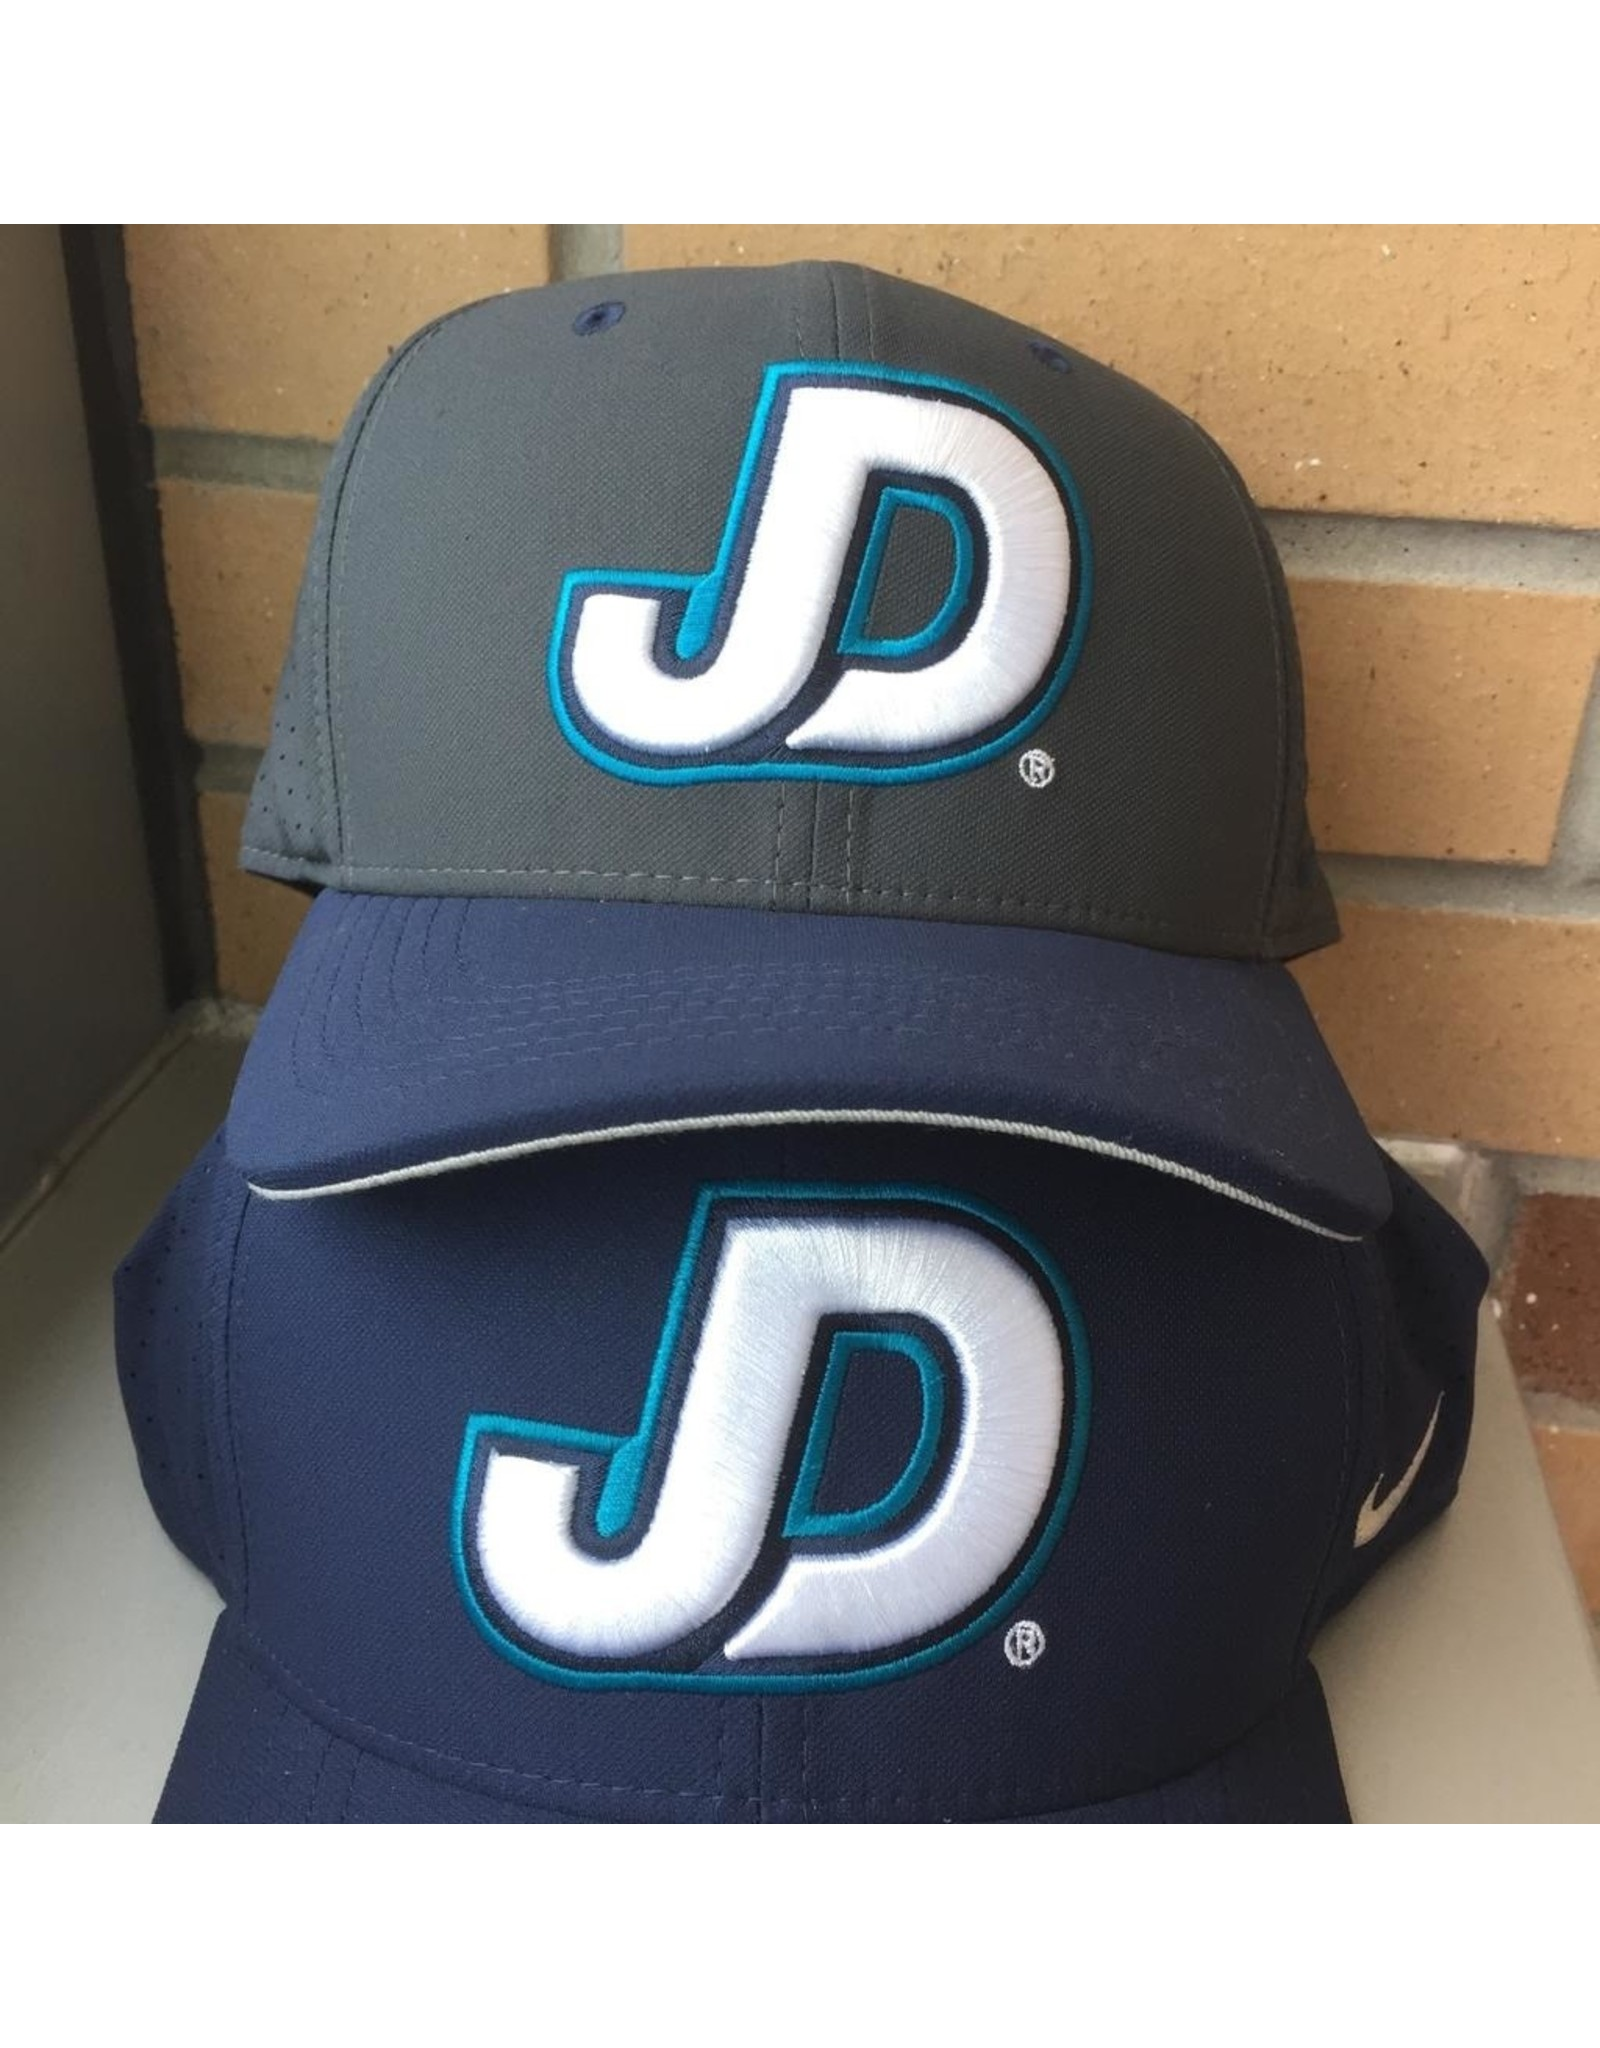 NON-UNIFORM Cap - Fitted Nike JD logo with cross on back